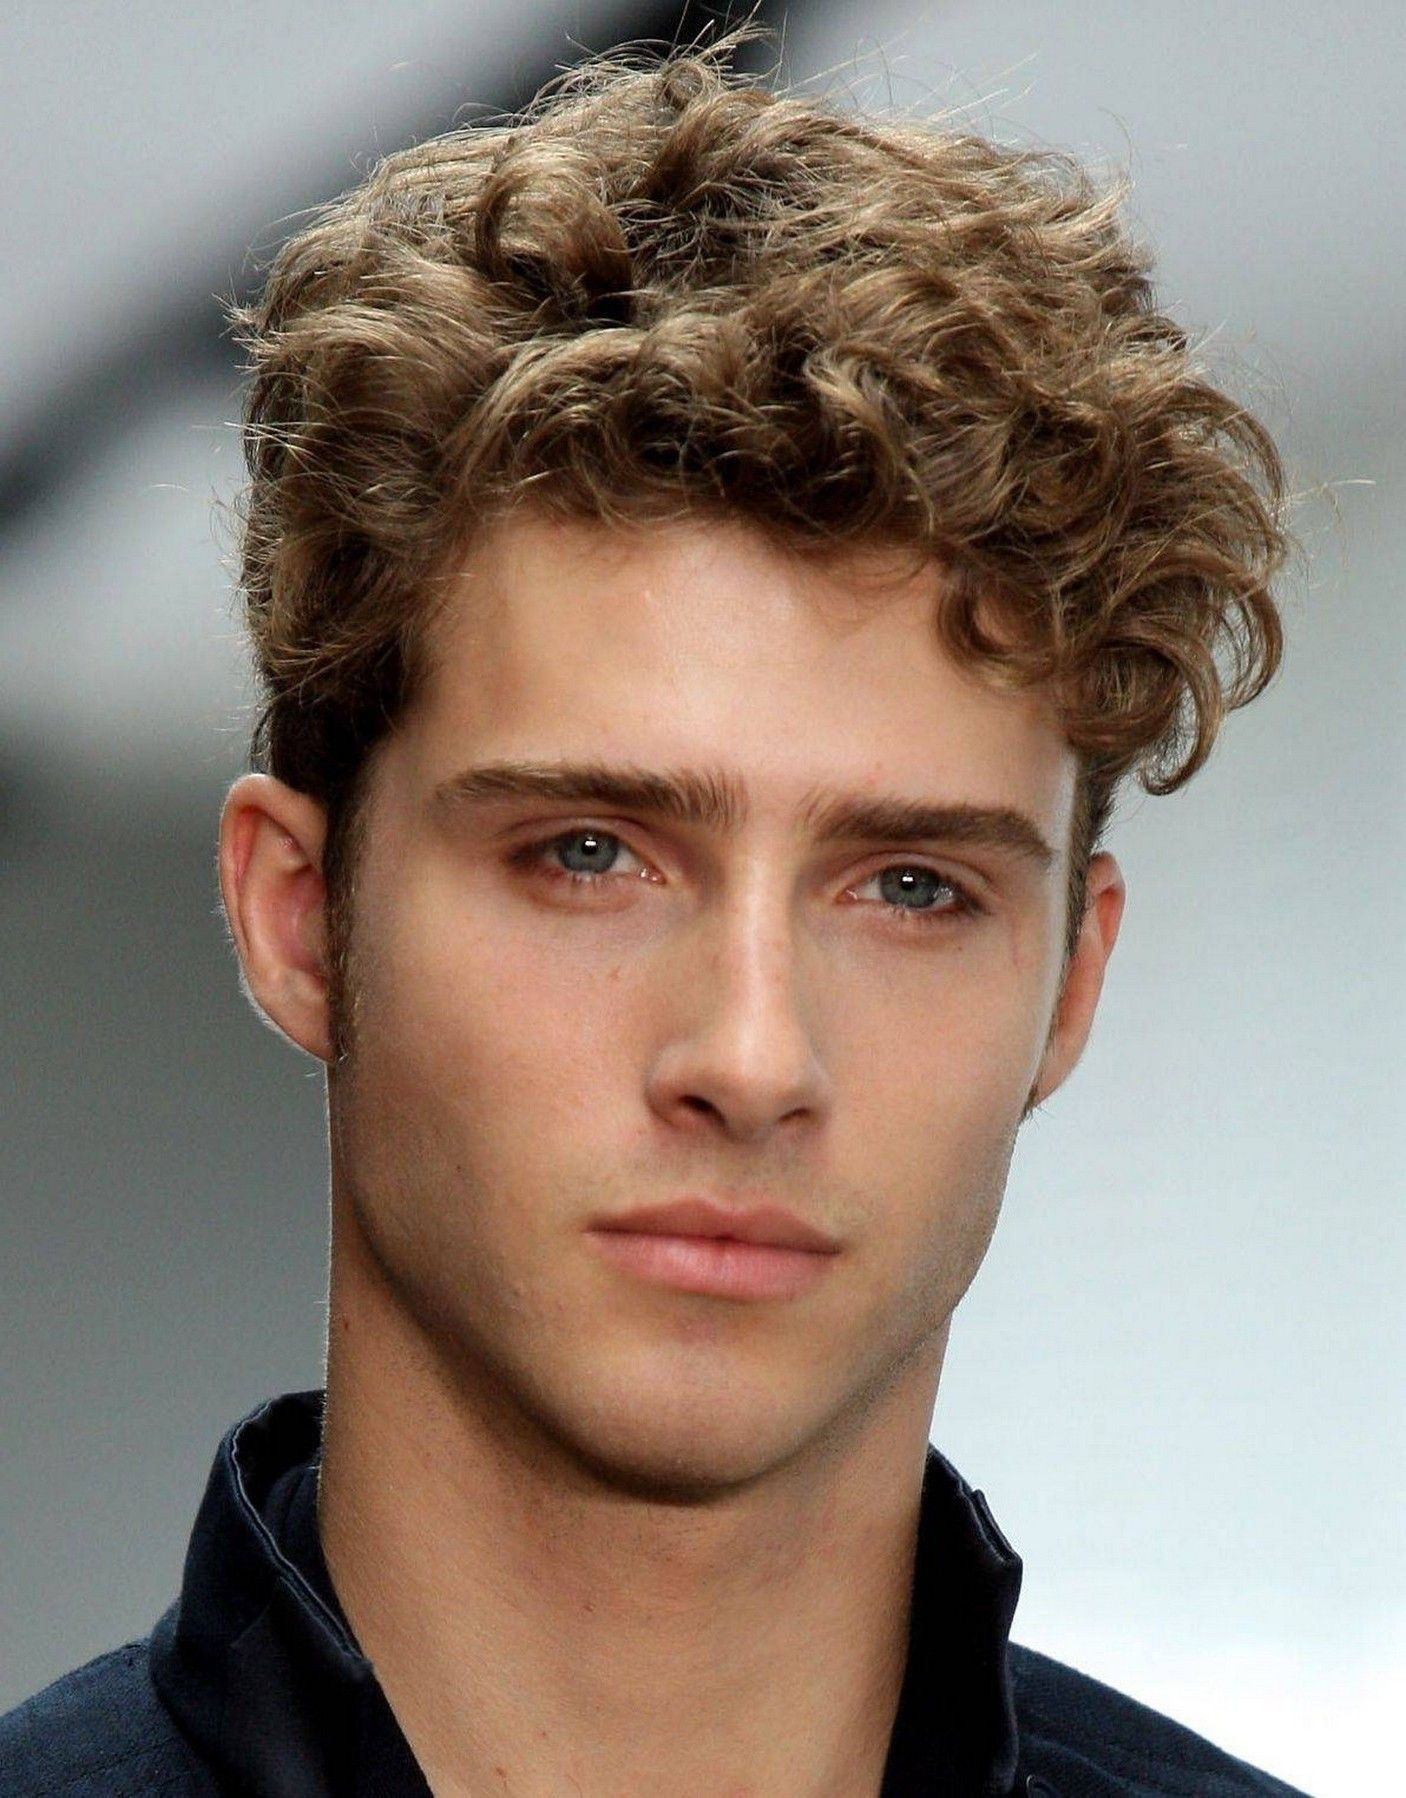 Brand New Mens Hairstyles Short Back And Sides Curly On Top Looks